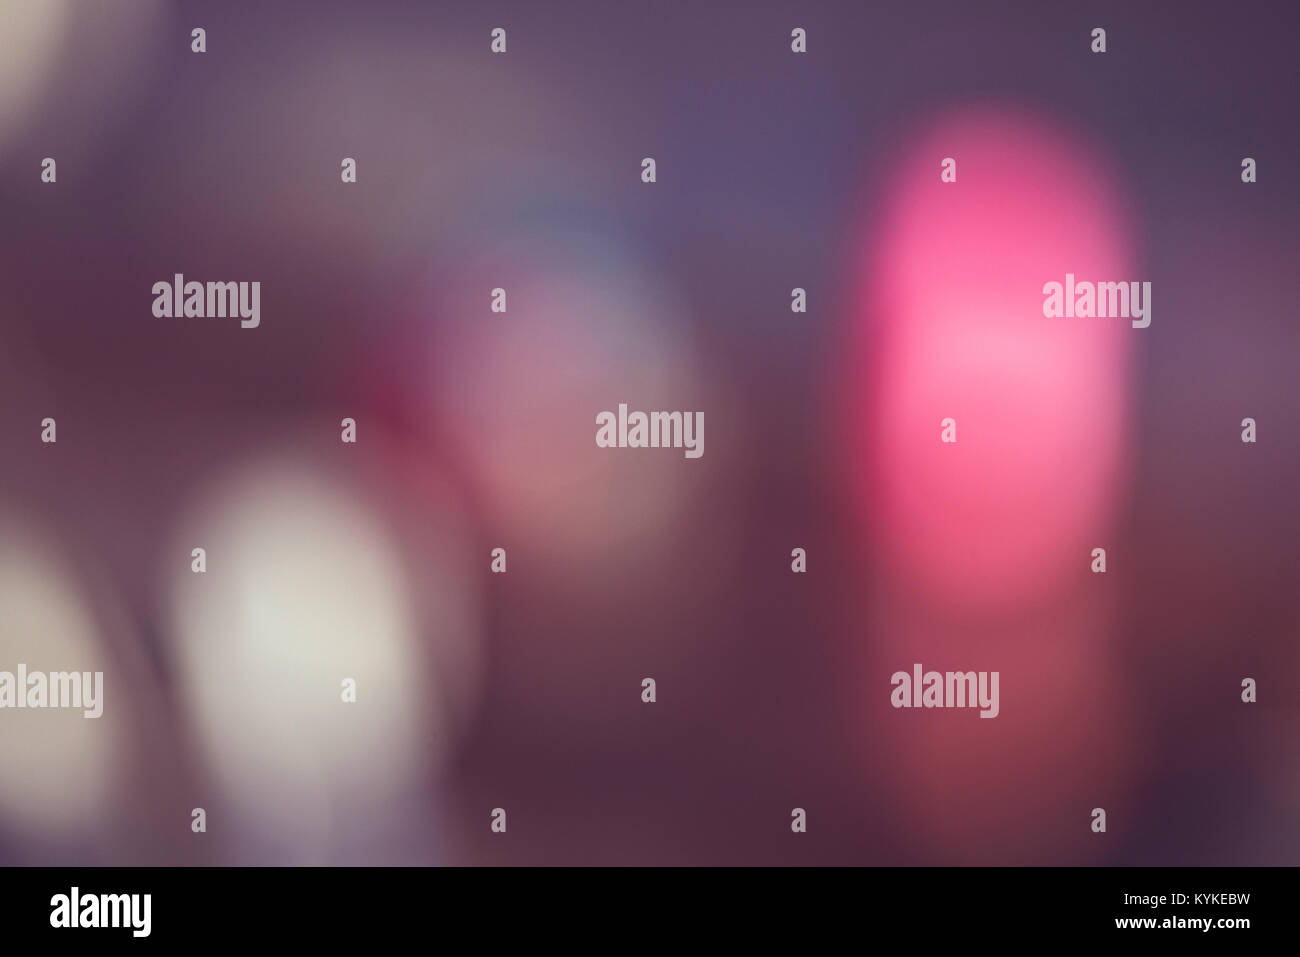 Blurry violet background with abstract pink lights out of focus in the dark - Stock Image